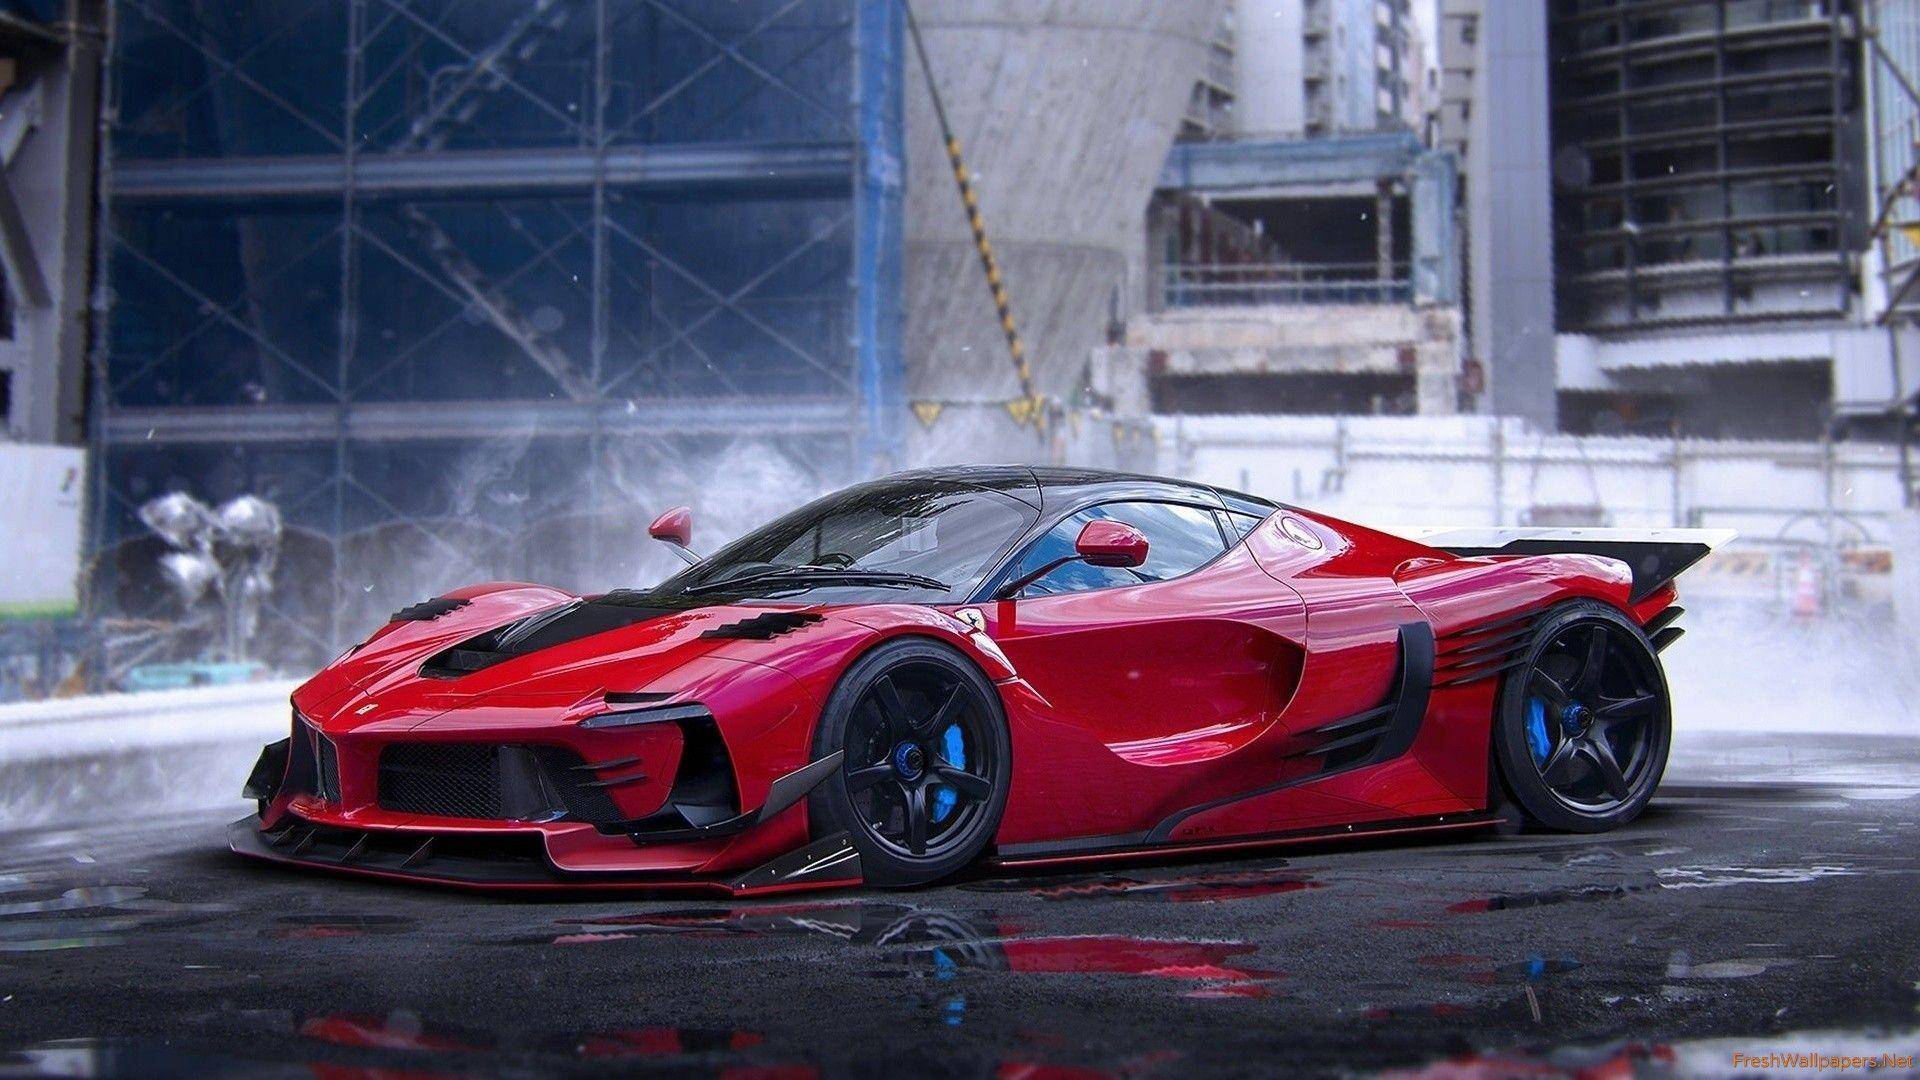 Ferrari LaFerrari Wallpapers - Wallpaper Cave